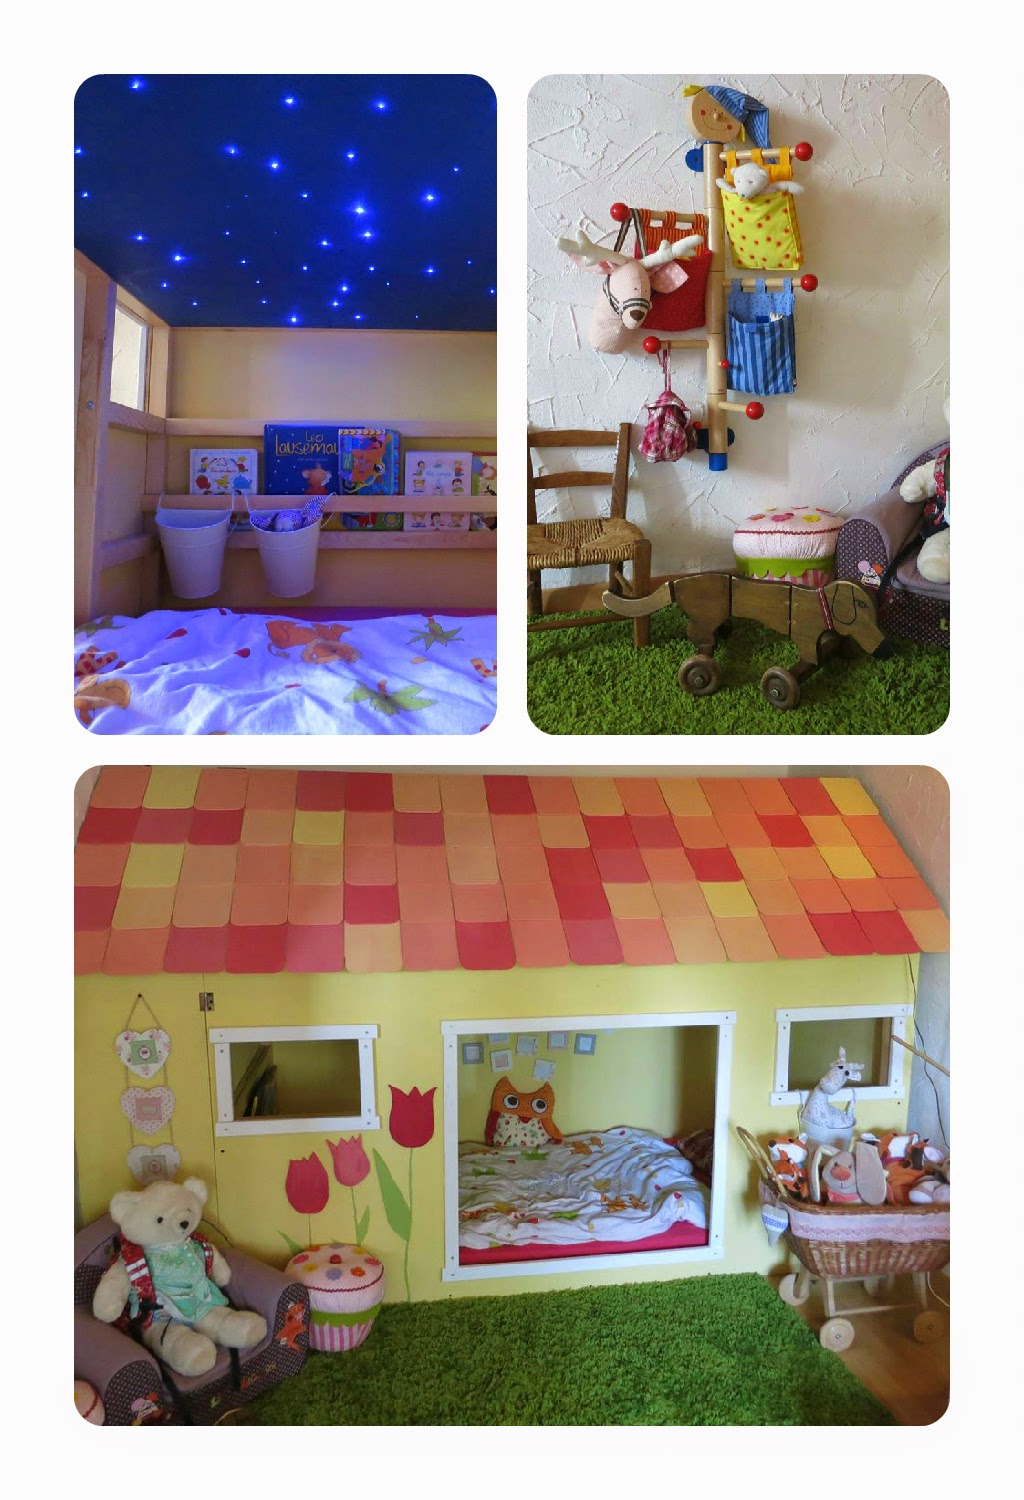 Fanasaba kinderzimmer do it yourself - Do it yourself kinderzimmer gestalten ...